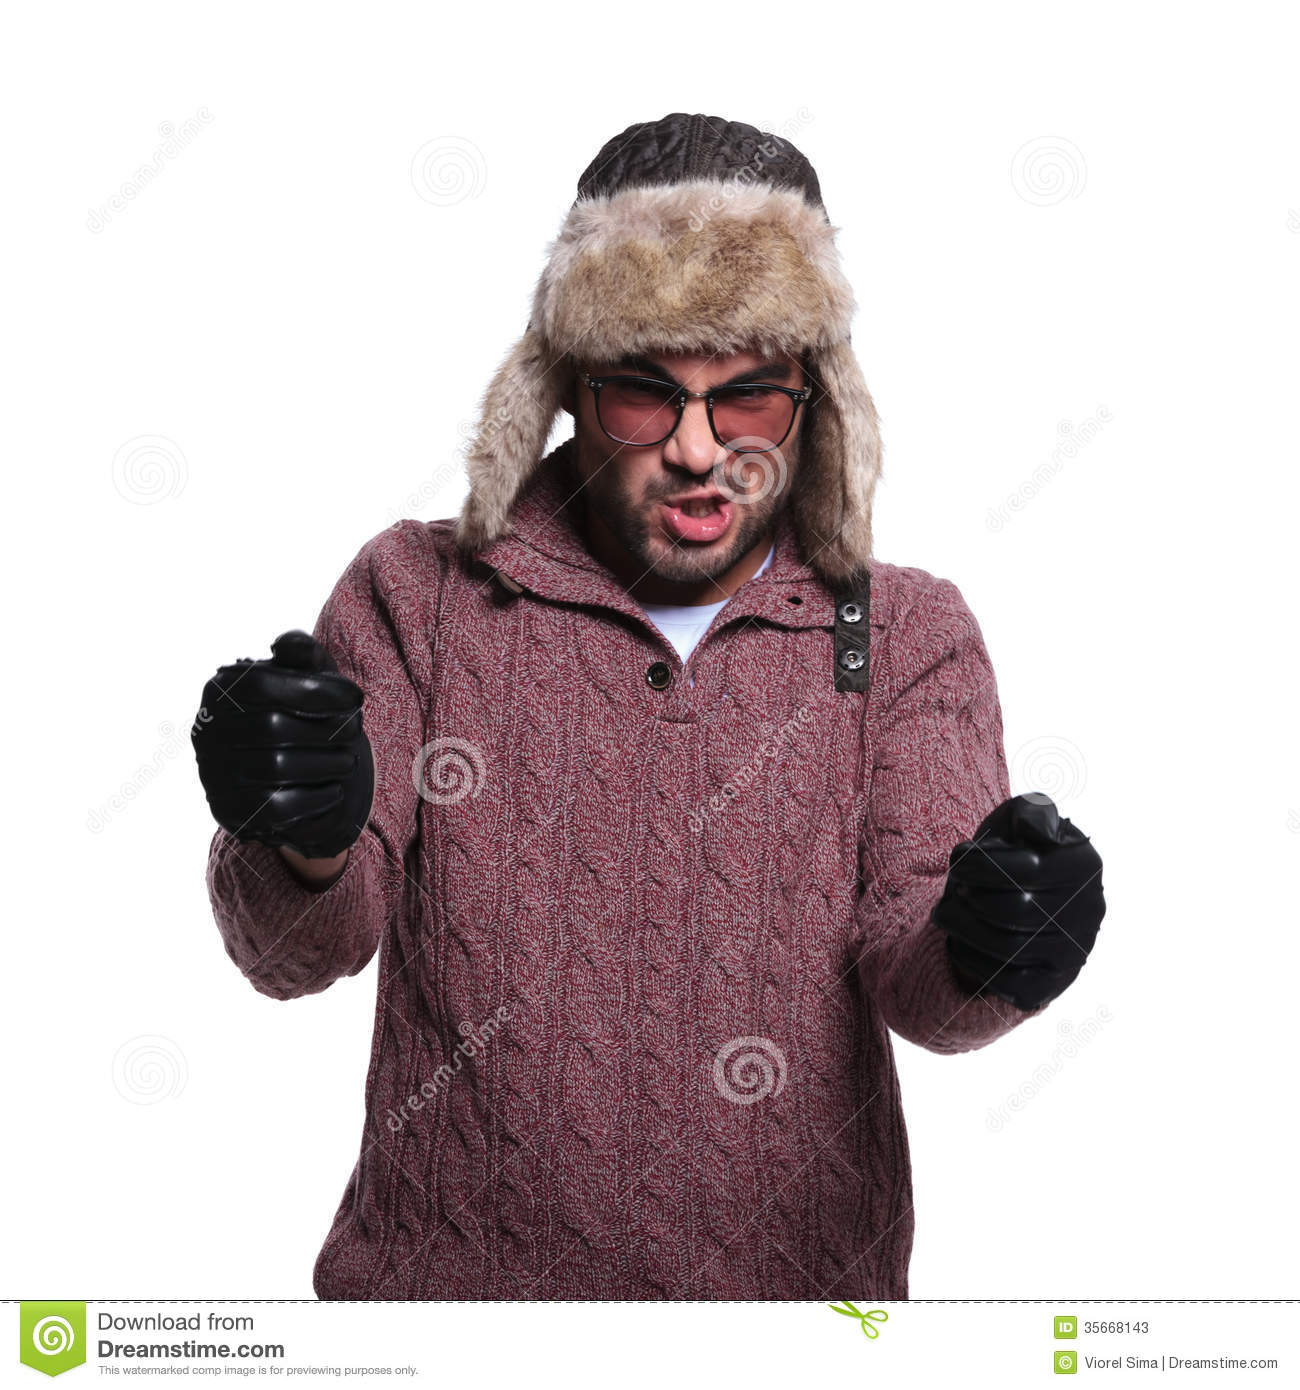 Leather driving gloves from drive - Man In Fur Hat And Leather Gloves Is Driving An Imaginary Race C Stock Photos